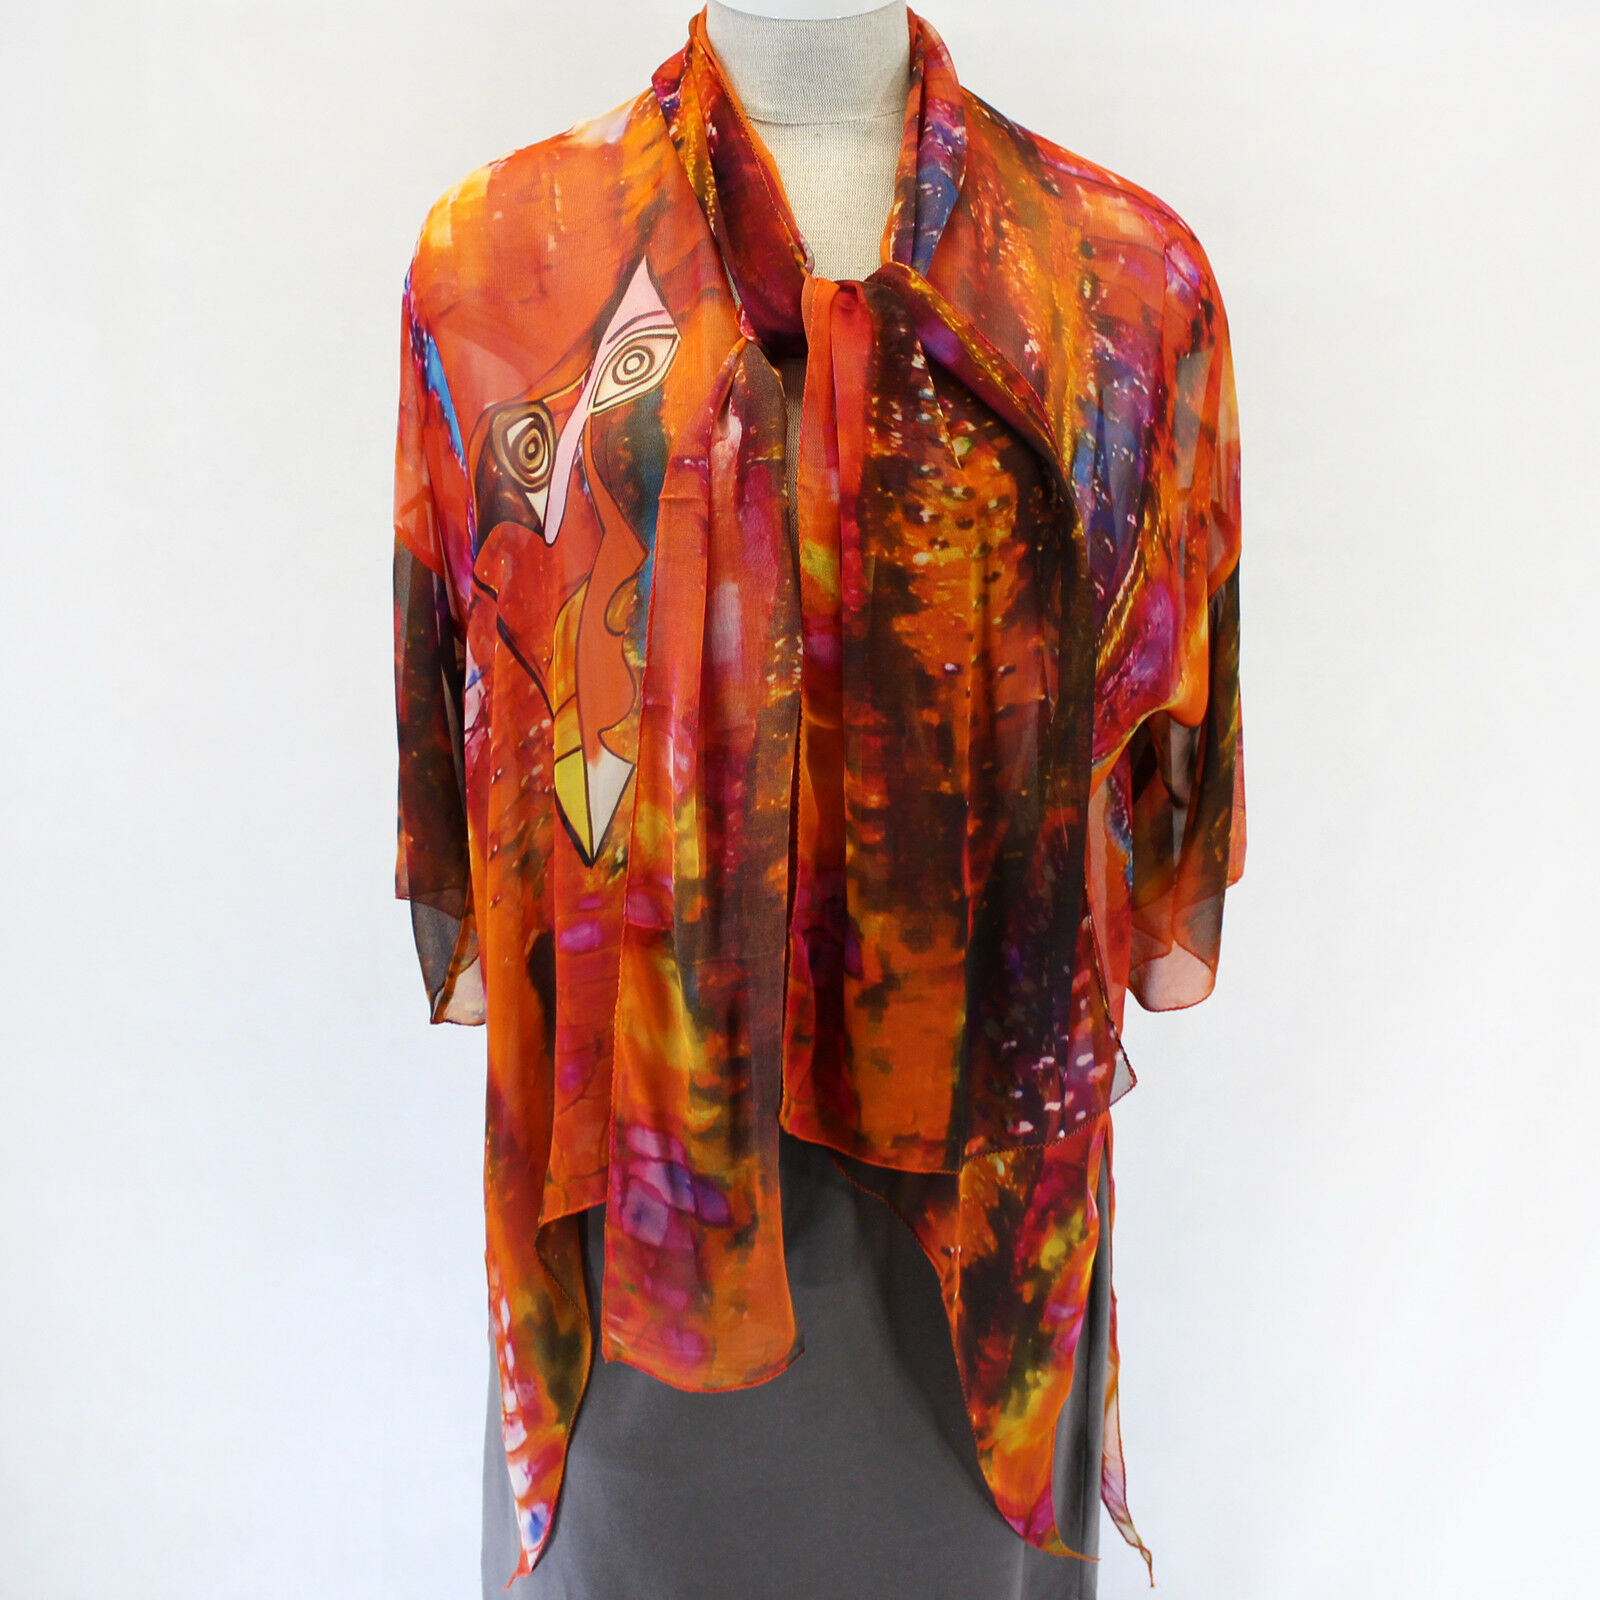 NEW Dilemma Plus Picasso Inspirot 100% Silk Jacket Wrap Scarf Set fits XL 1X 2X